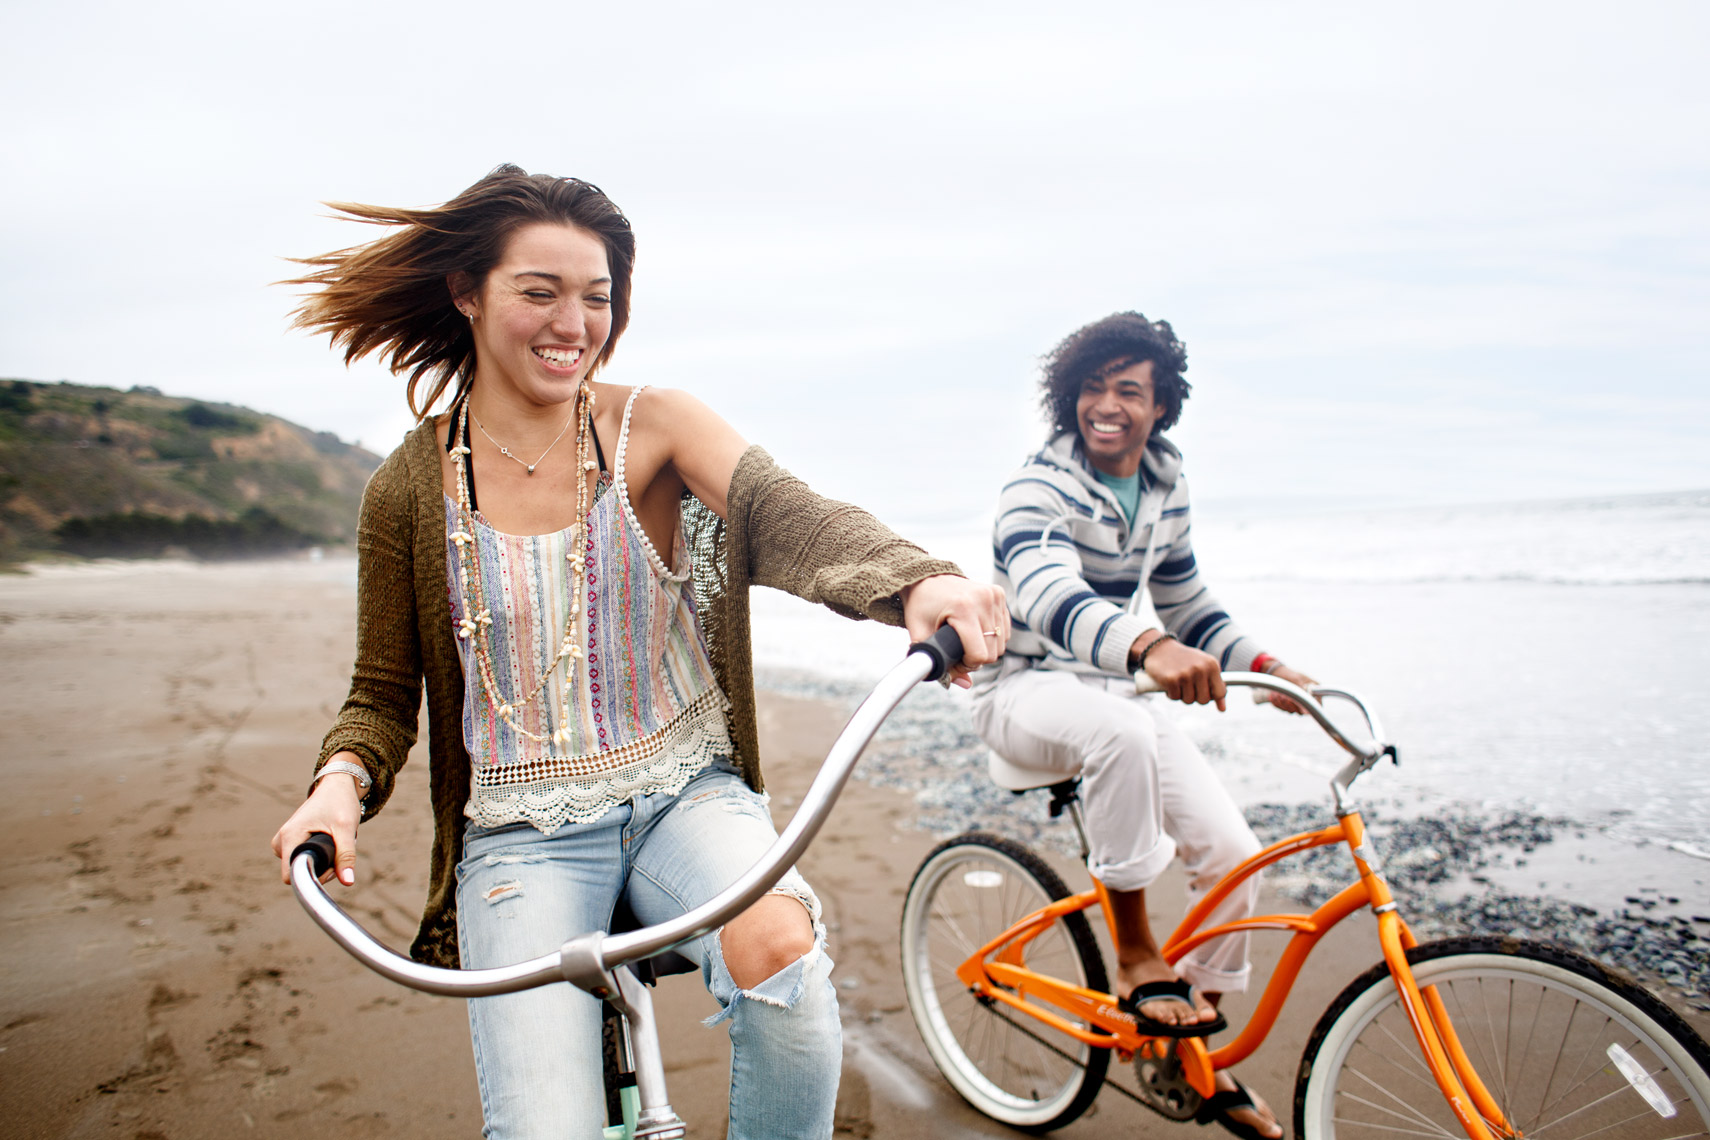 San Francisco Bay Area Advertising, Lifestyle, Commercial Photographer, african american female riding bikes on beach, millennials, girls riding bikes